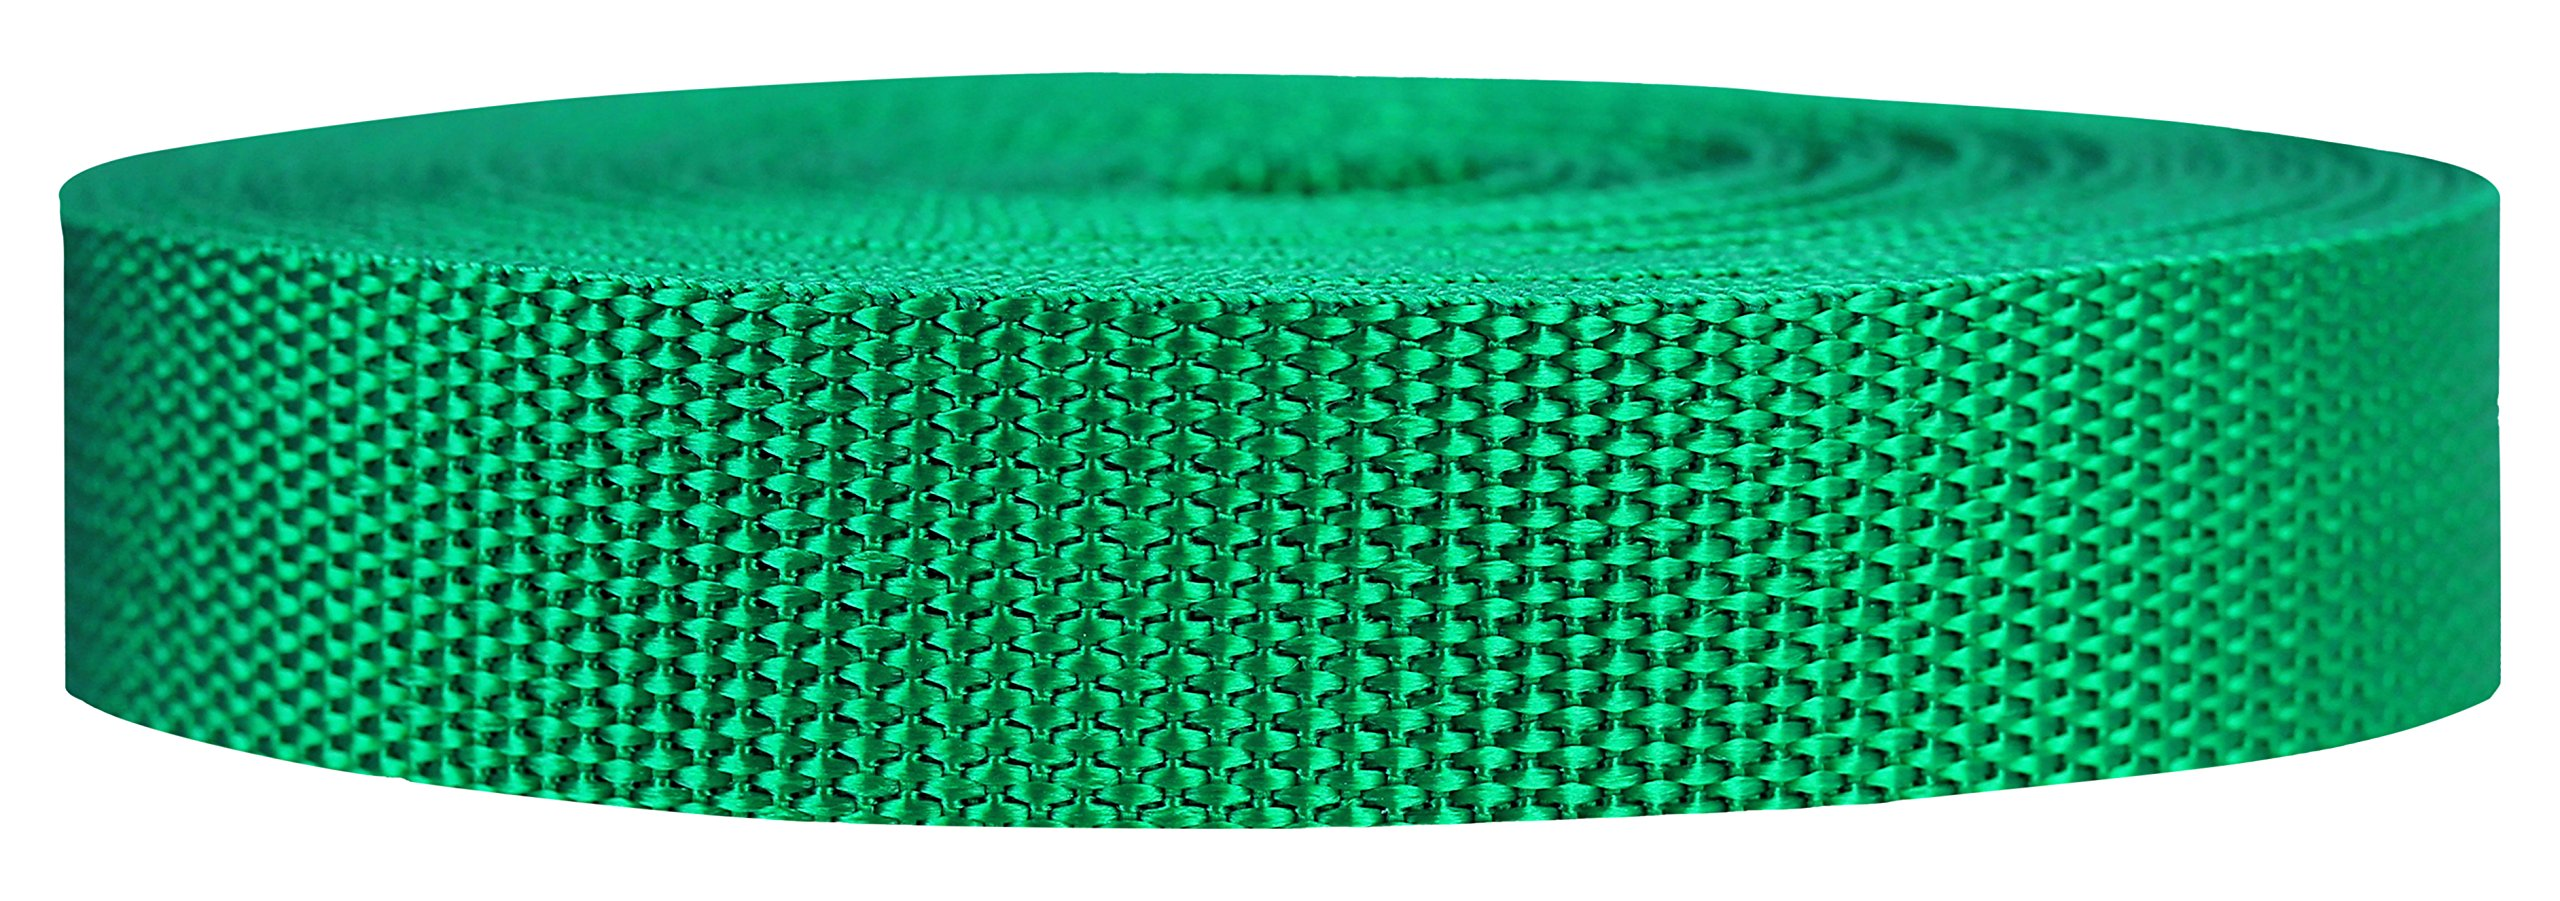 Strapworks Heavyweight Polypropylene Webbing - Heavy Duty Poly Strapping for Outdoor DIY Gear Repair, 1 Inch x 10 Yards - Kelly Green